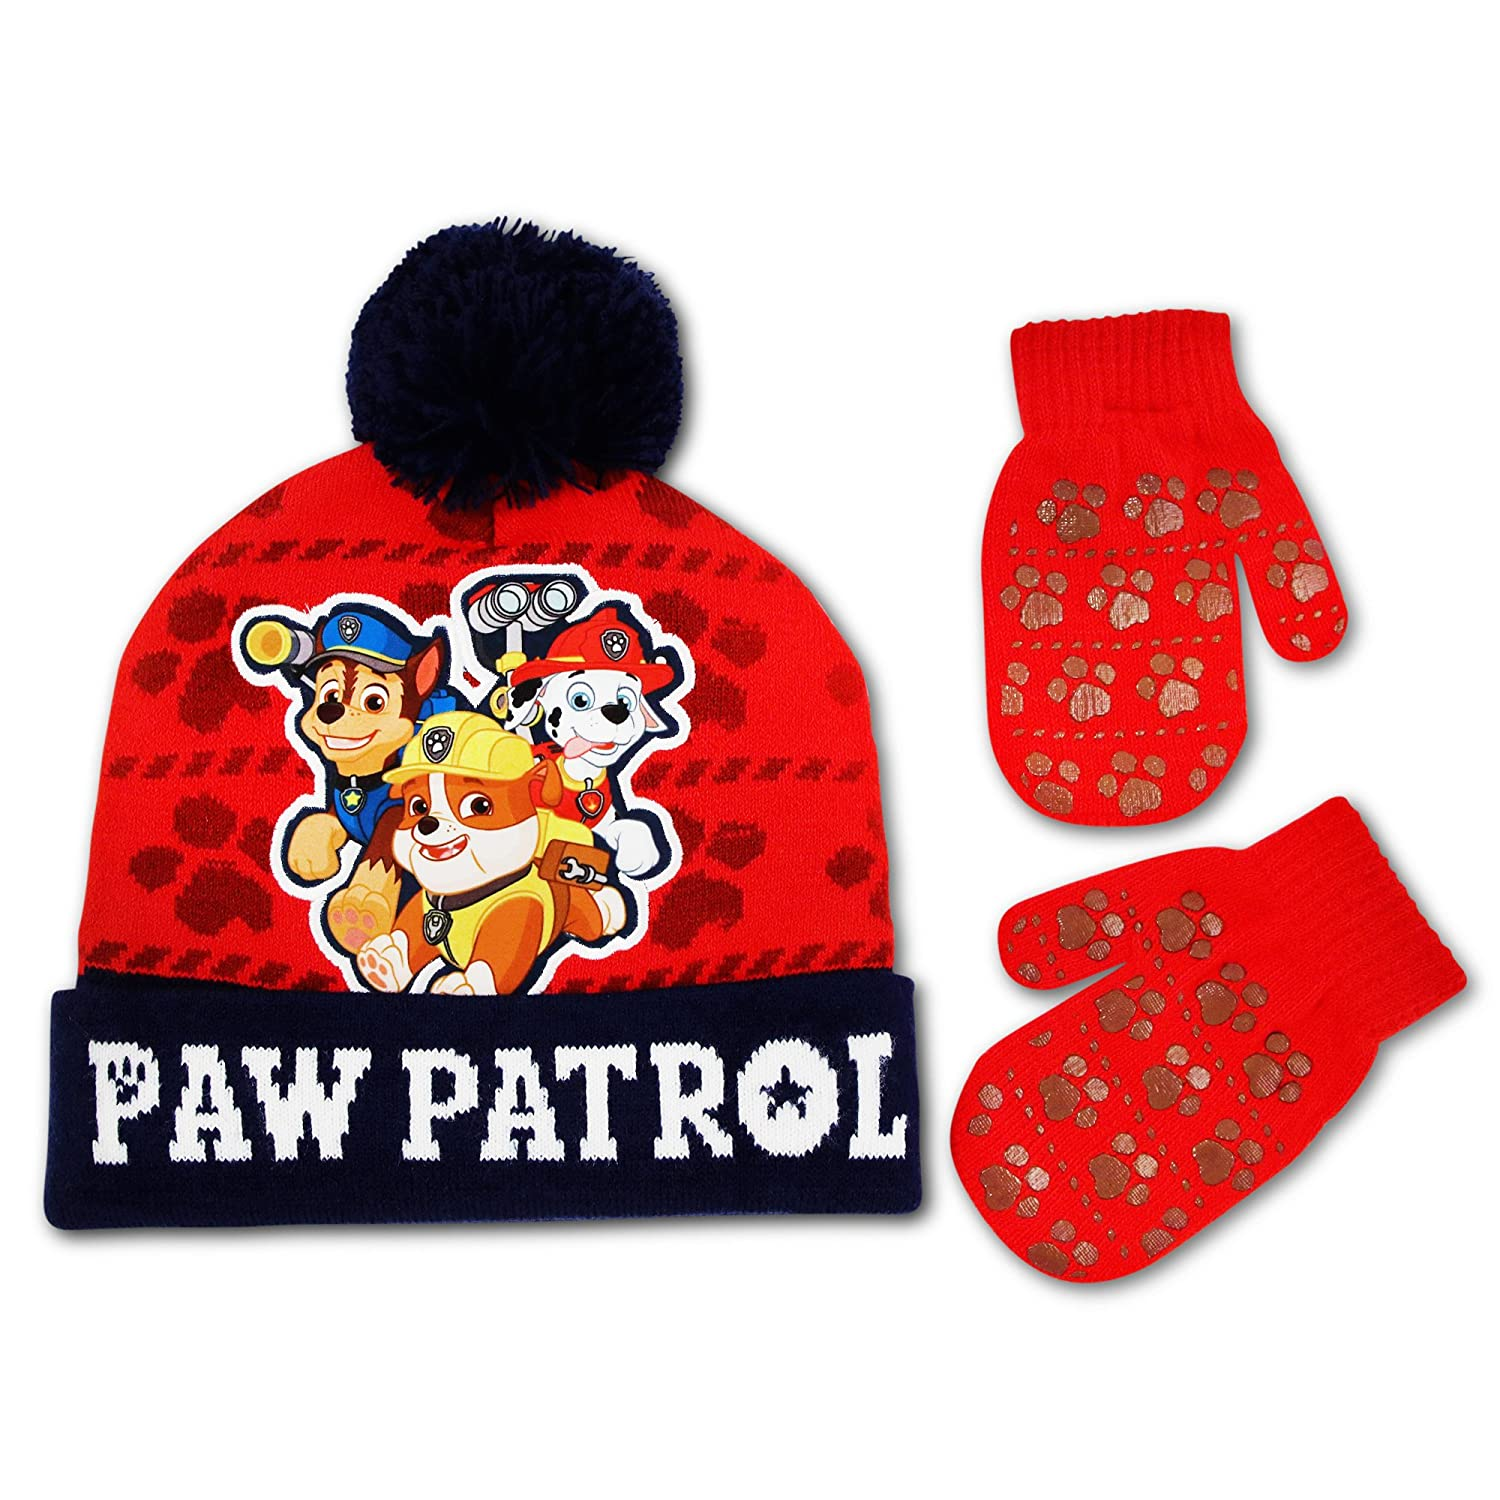 best loved 7654e fdd57 2-Piece cold weather set includes beanie hat and mittens featuring  Marshall, Chase and Rubble from Nickelodeon s Paw Patrol